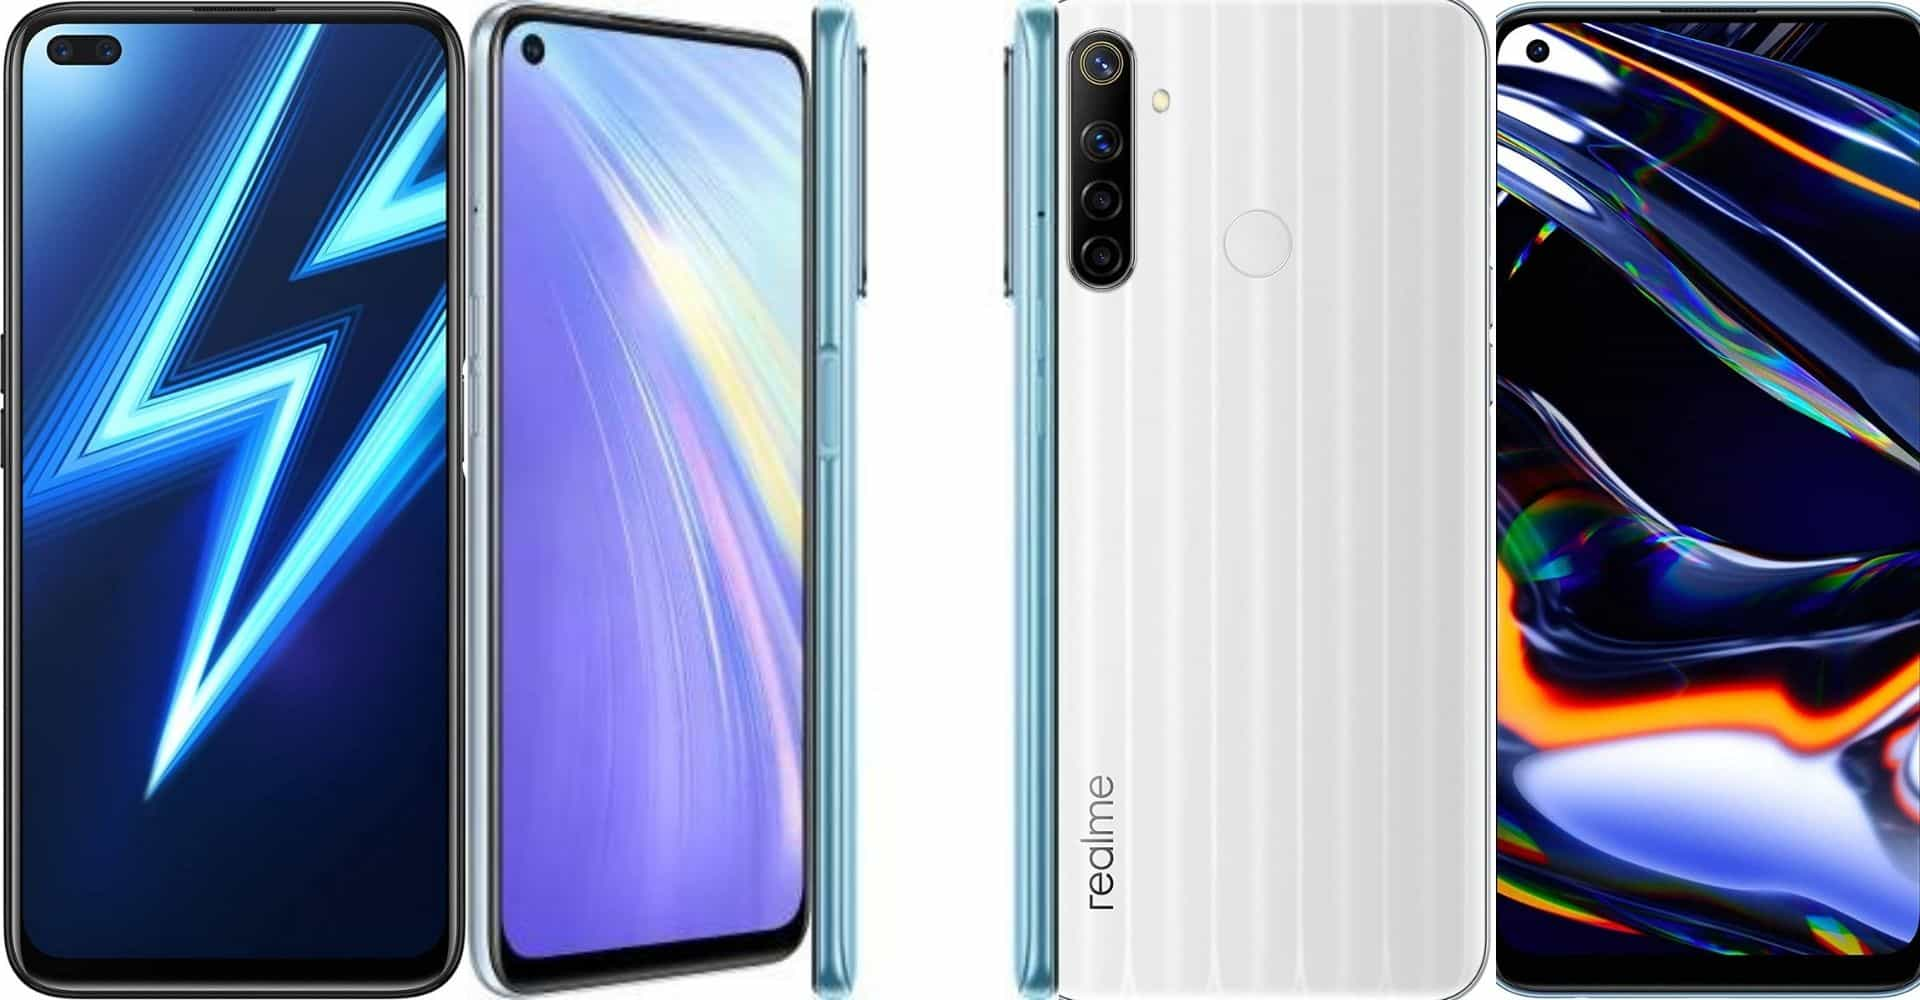 Realme latest smartphone